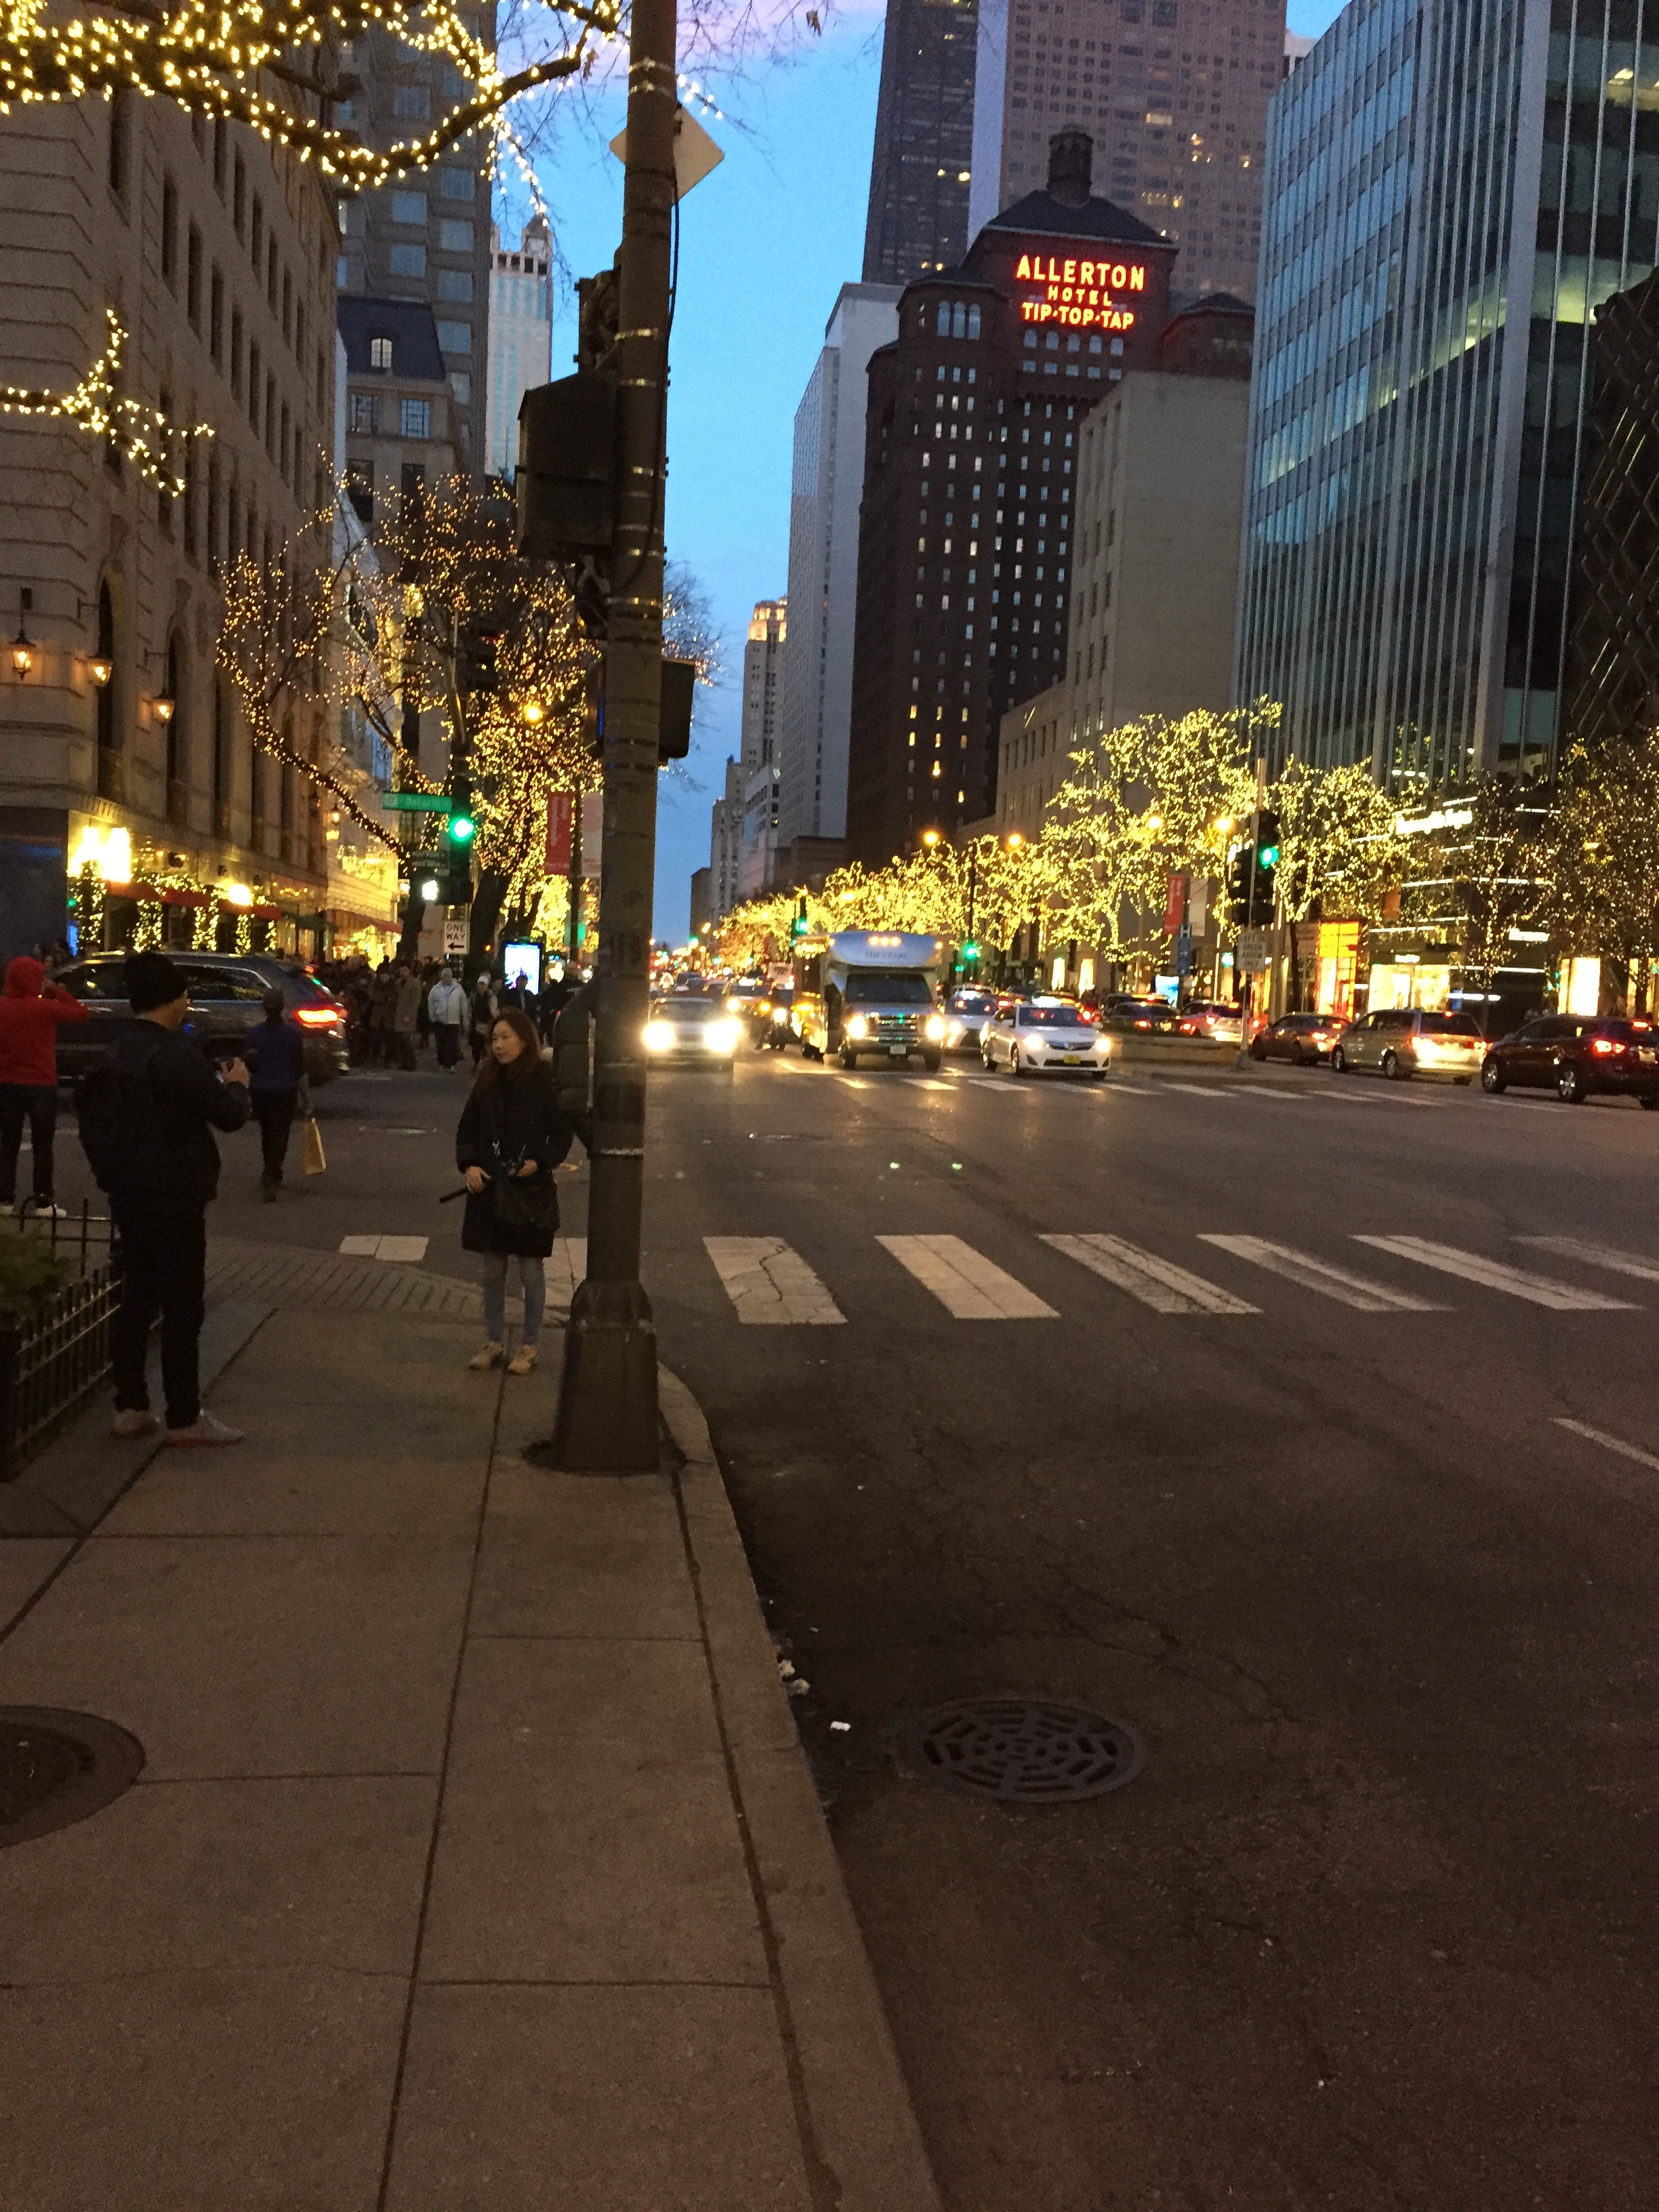 The Magnificent Mile is quite magnificent in December!